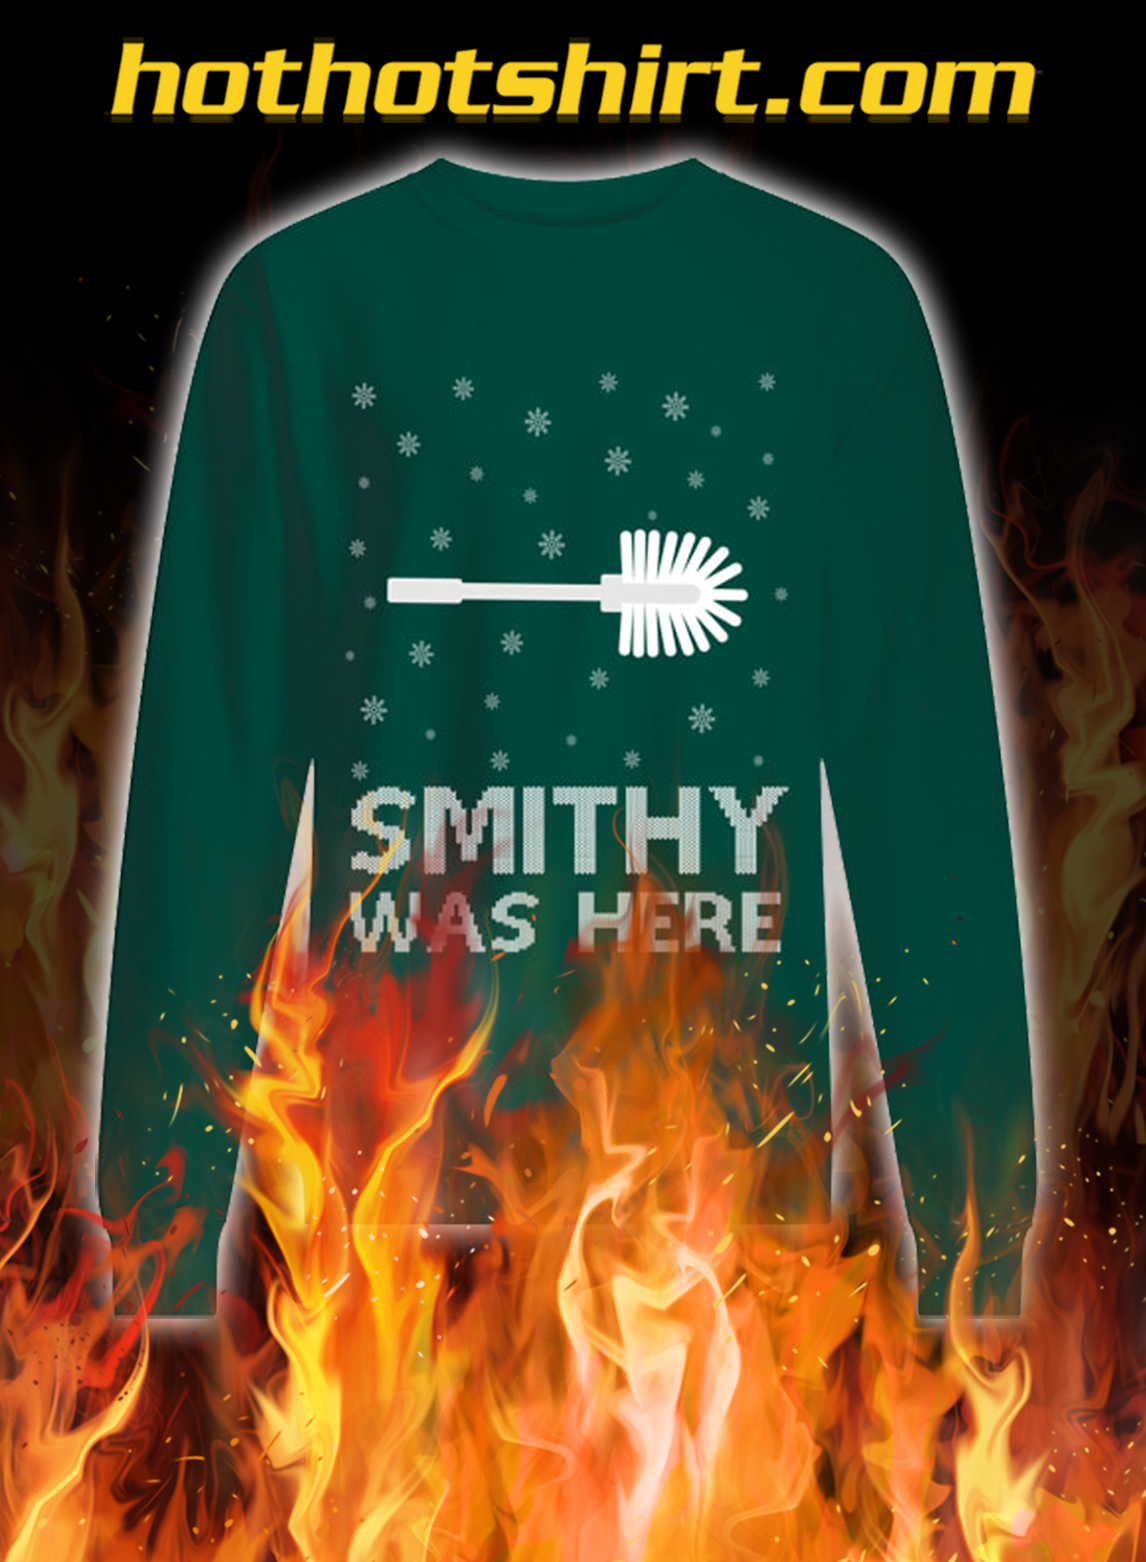 Smithy was here ugly christmas sweater- green